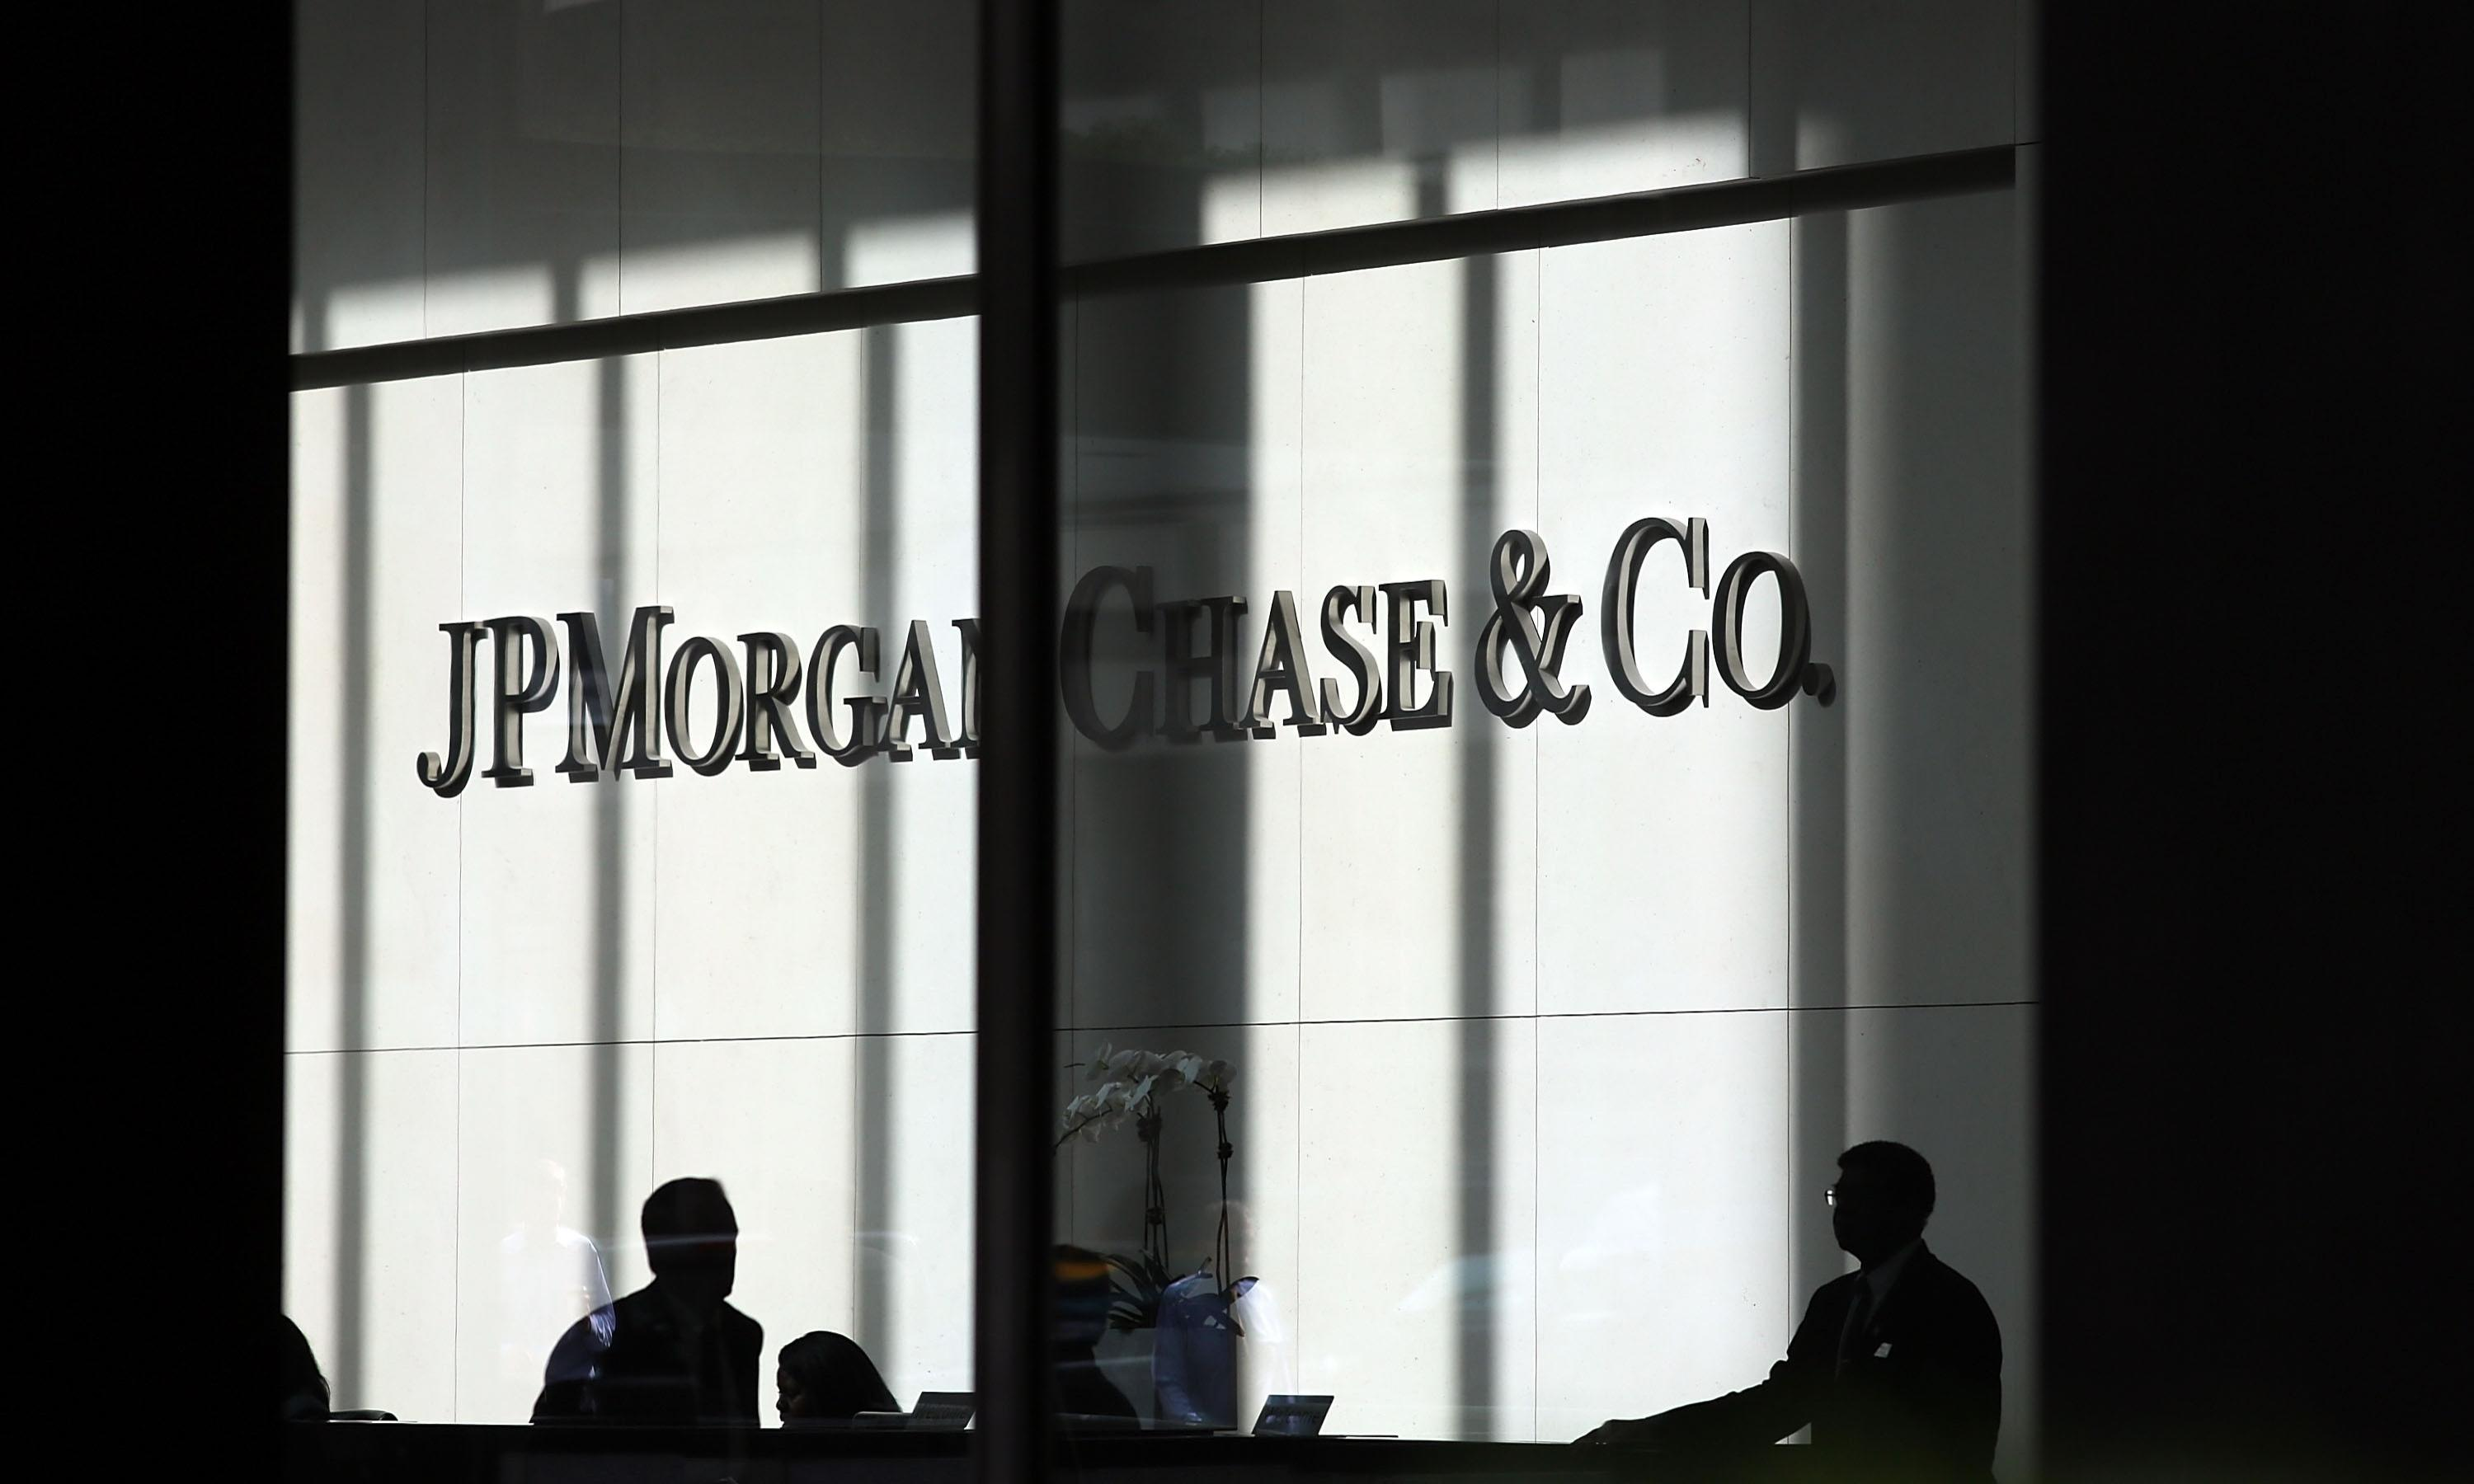 JPMorgan Chase cuts ties with Purdue Pharma over alleged role in opioid crisis